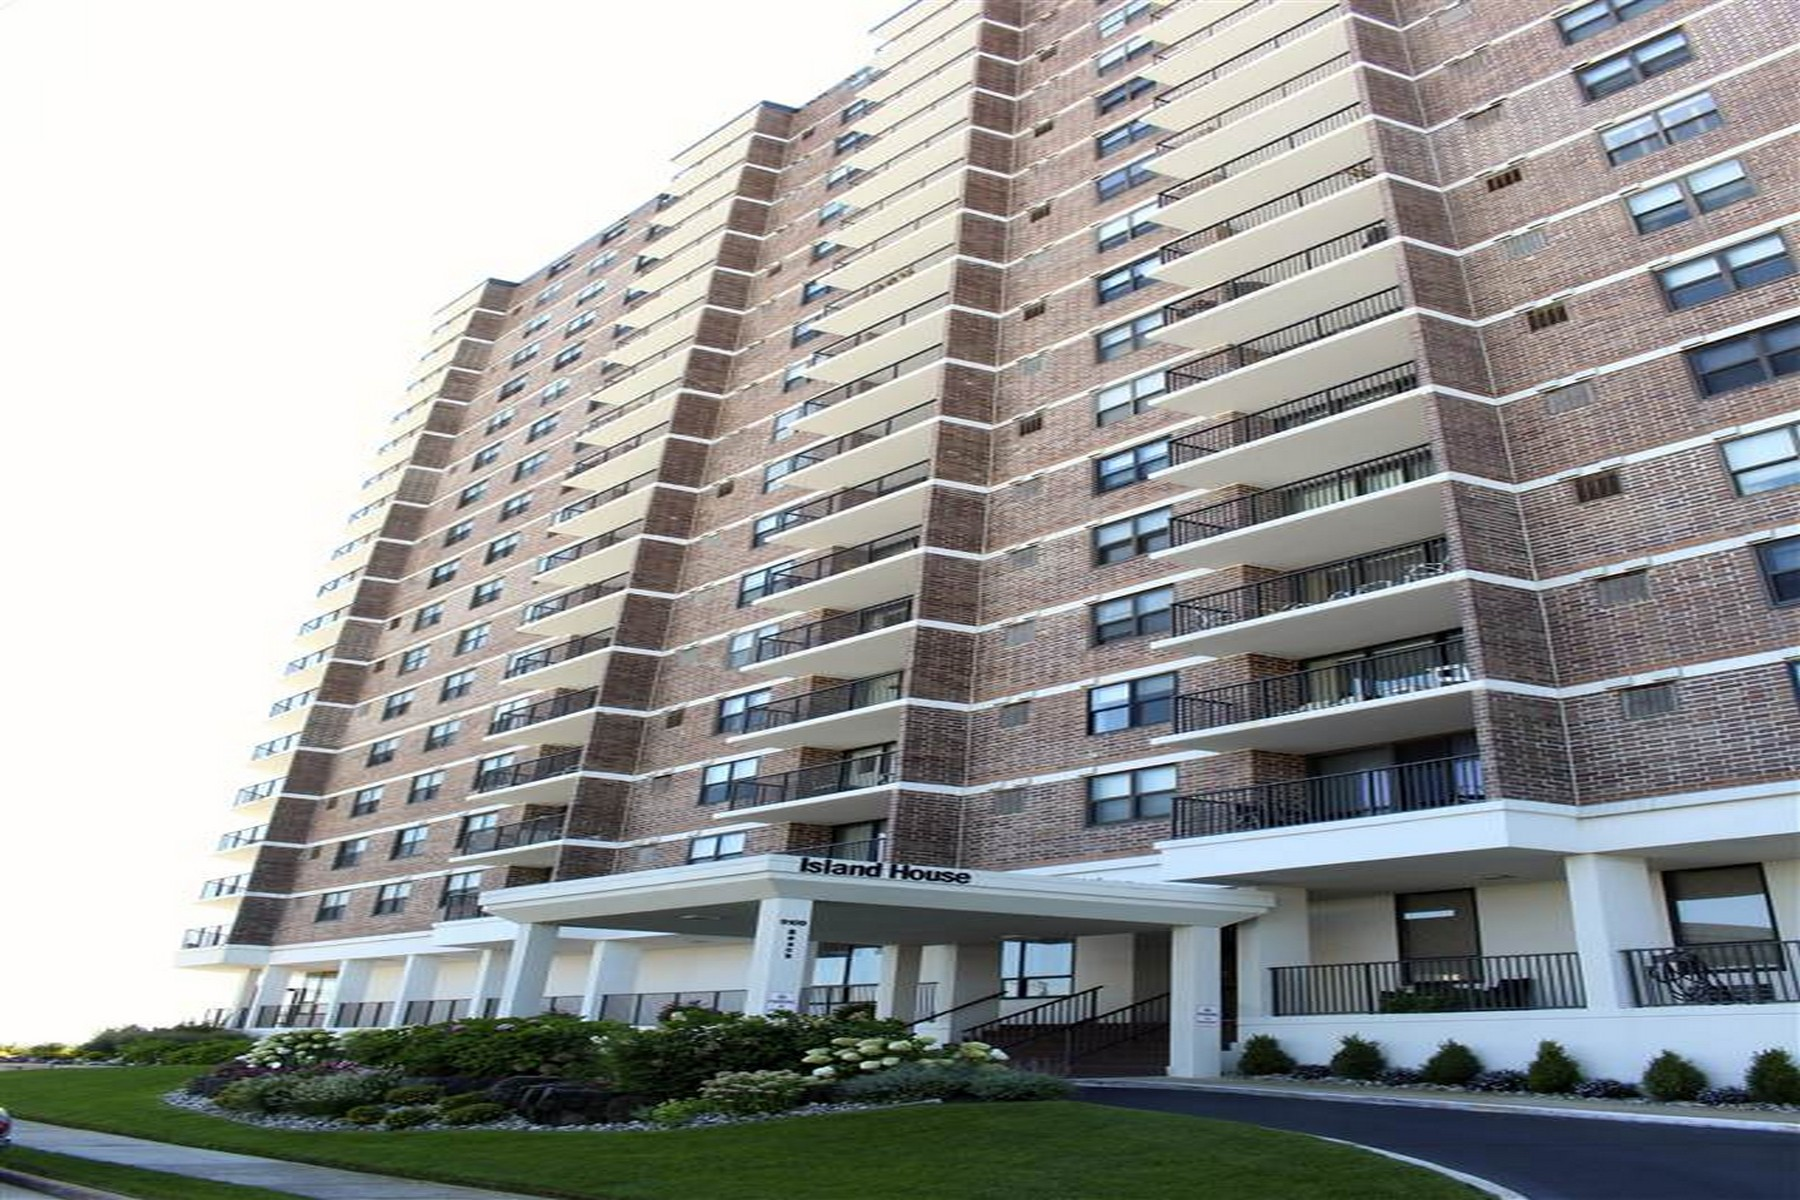 Condominium for Rent at 9100 Beach #1203 9100 Beach Unit 1203 Margate, New Jersey 08402 United States